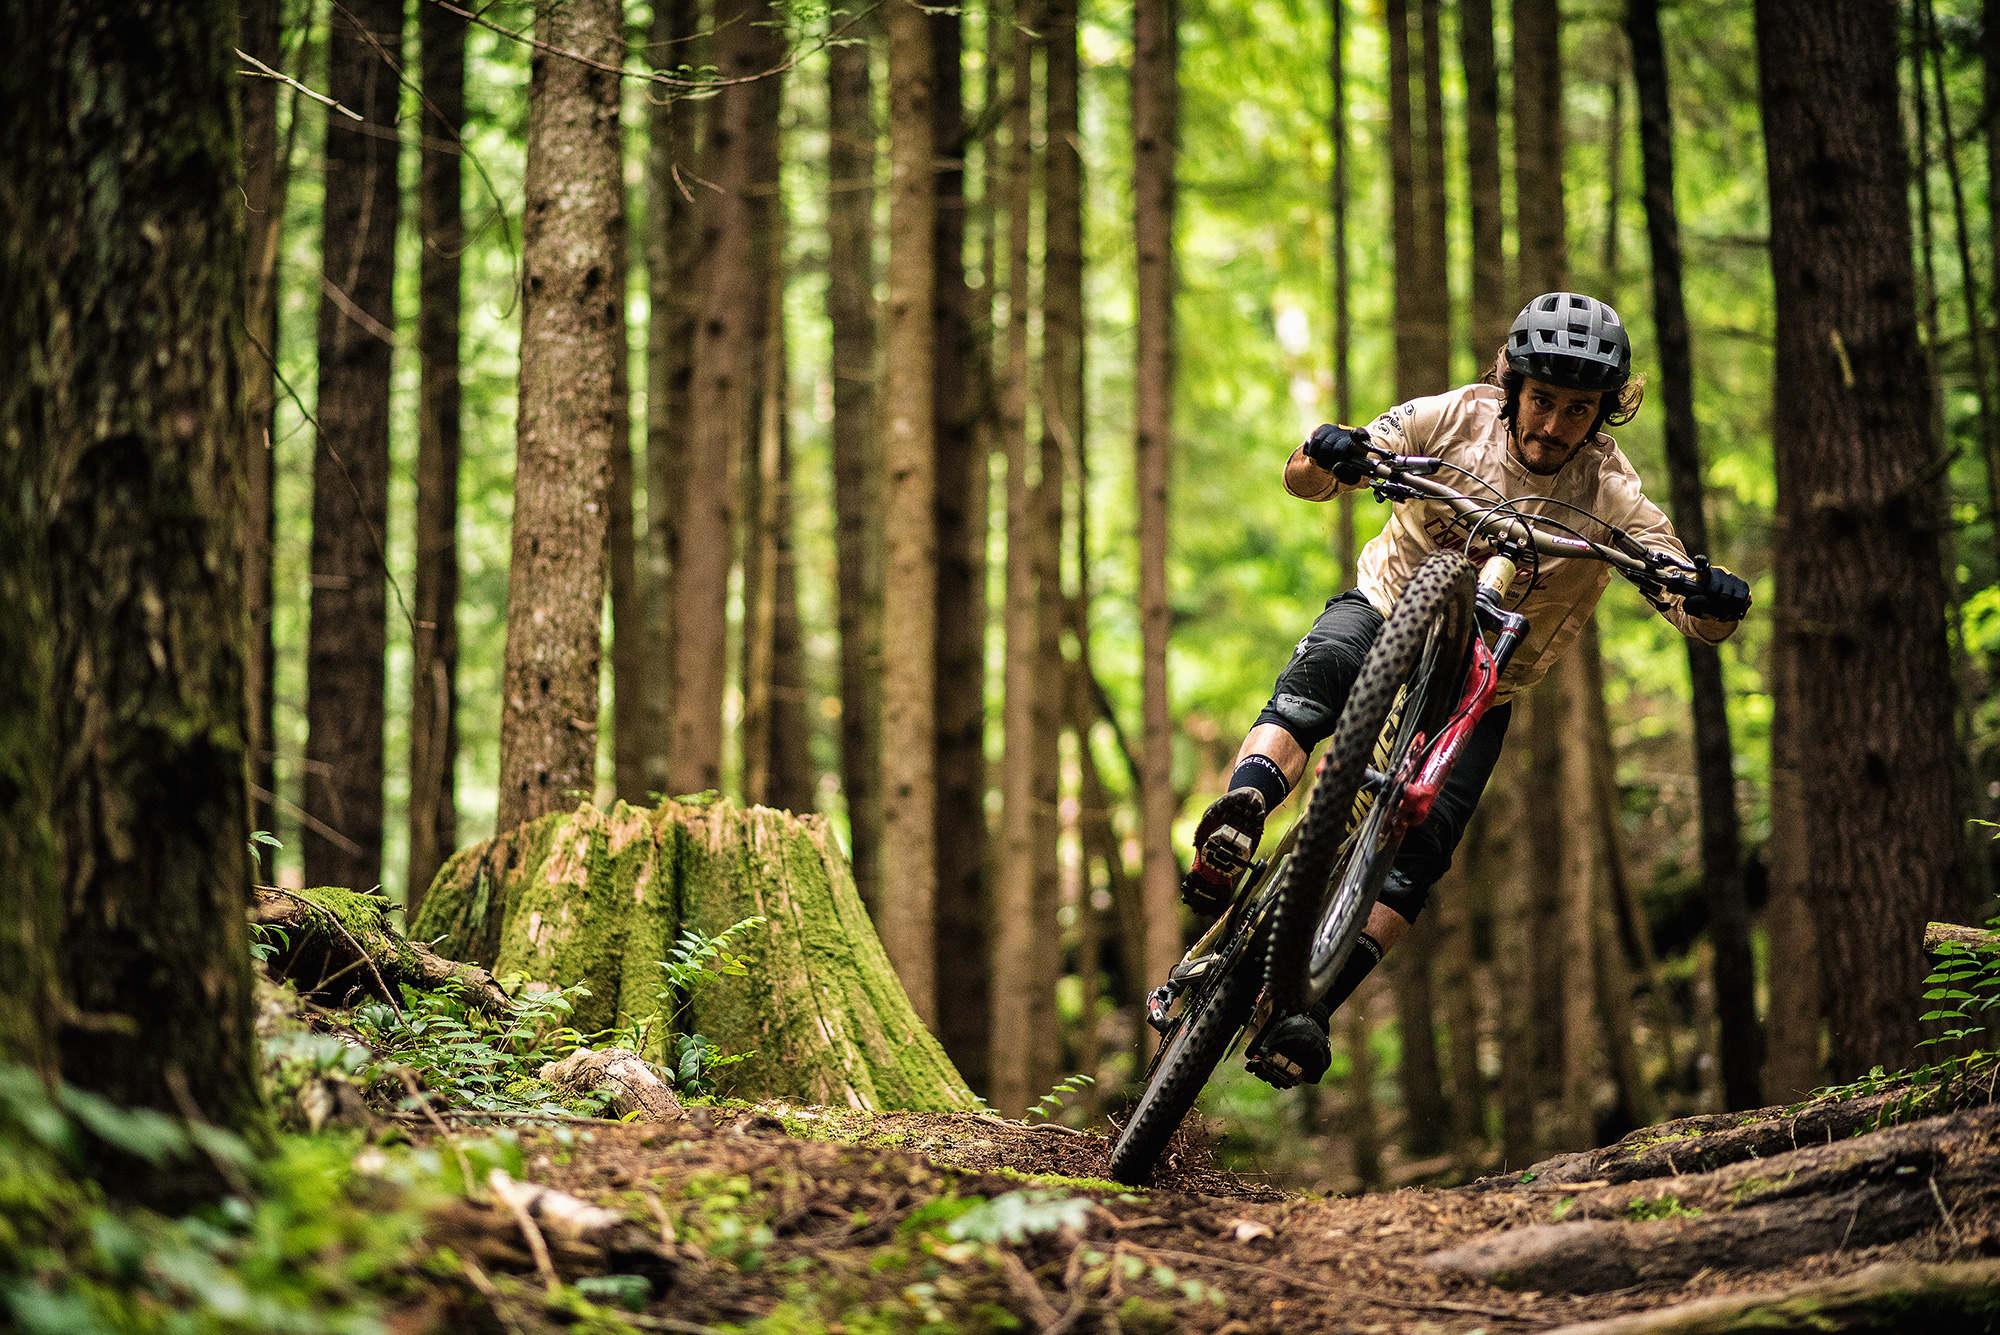 Yoann Barelli in Squamish